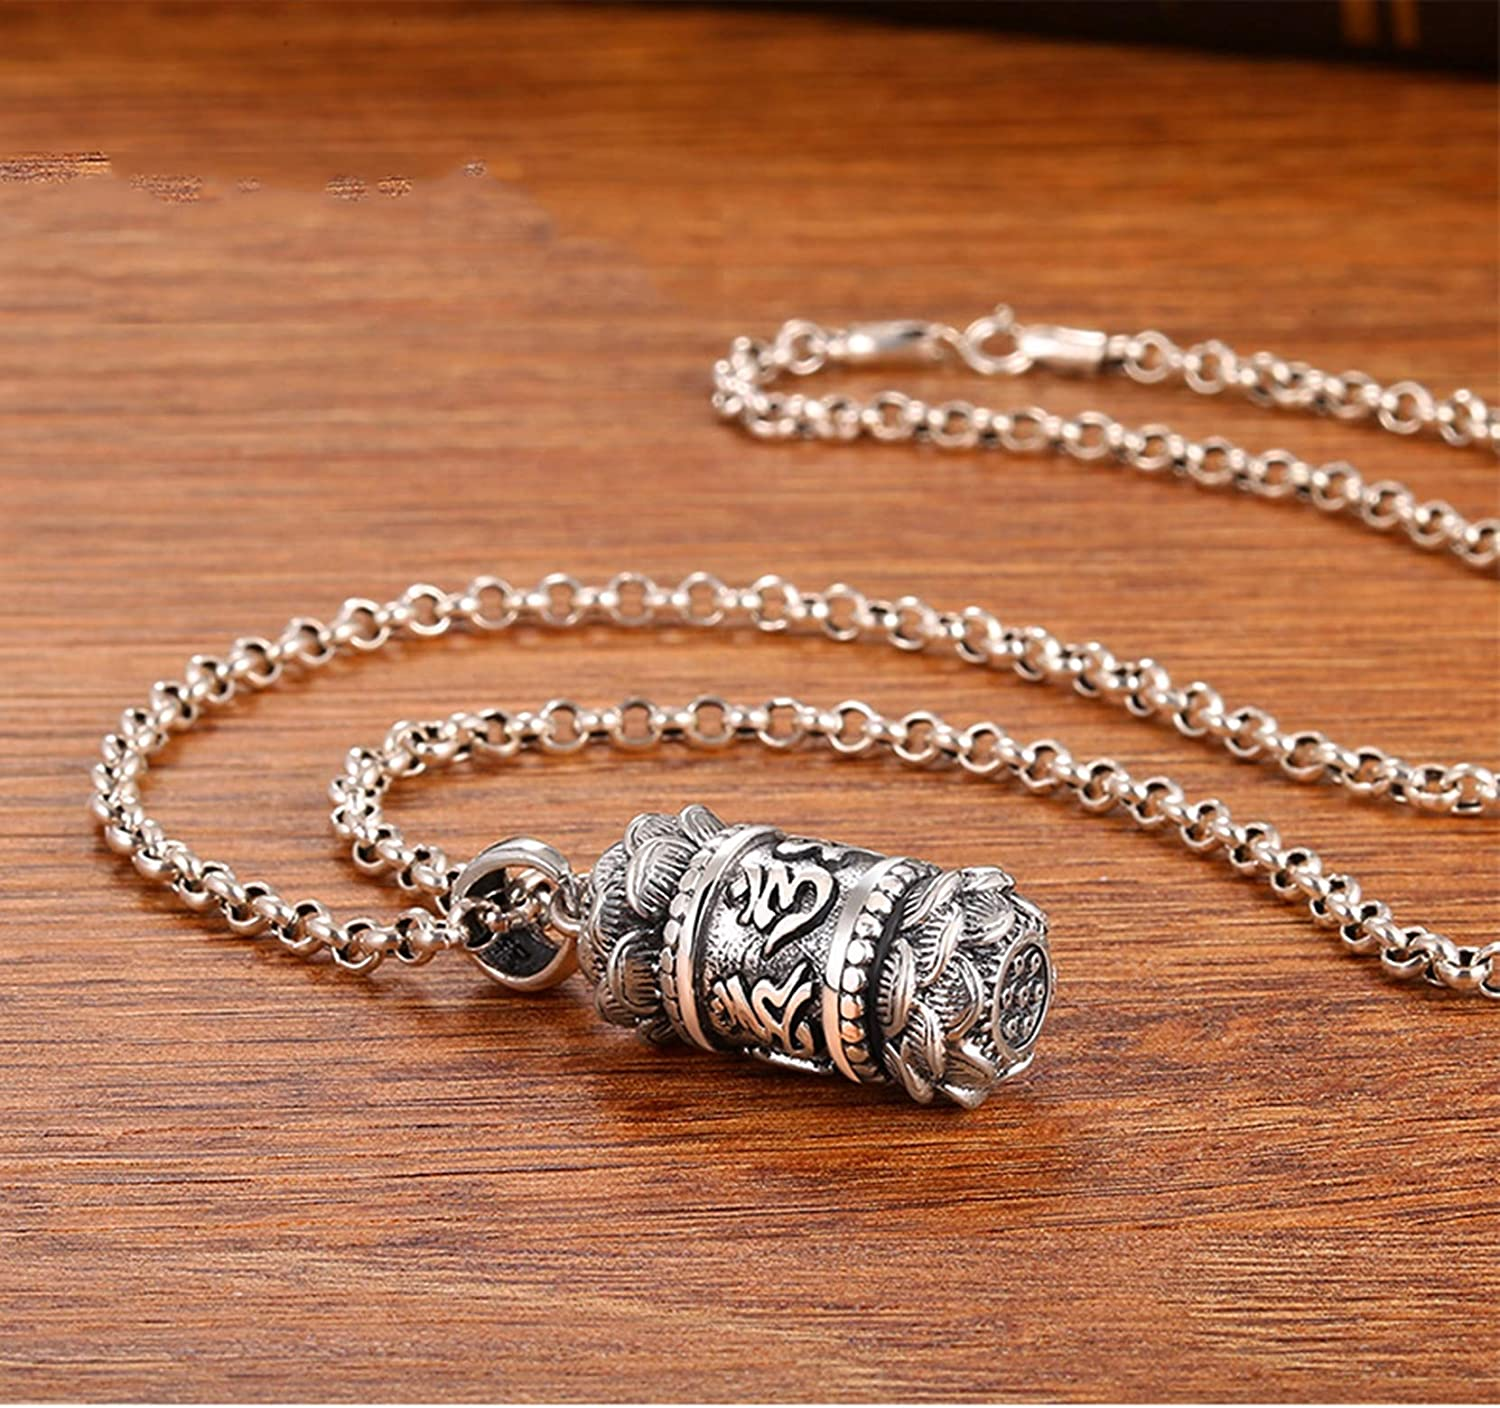 AMDXD Jewelry Sterling Silver Pendants for Men Buddhist Mantra Pendant with Shurangama Mantra Vintage Pendant Jewelry